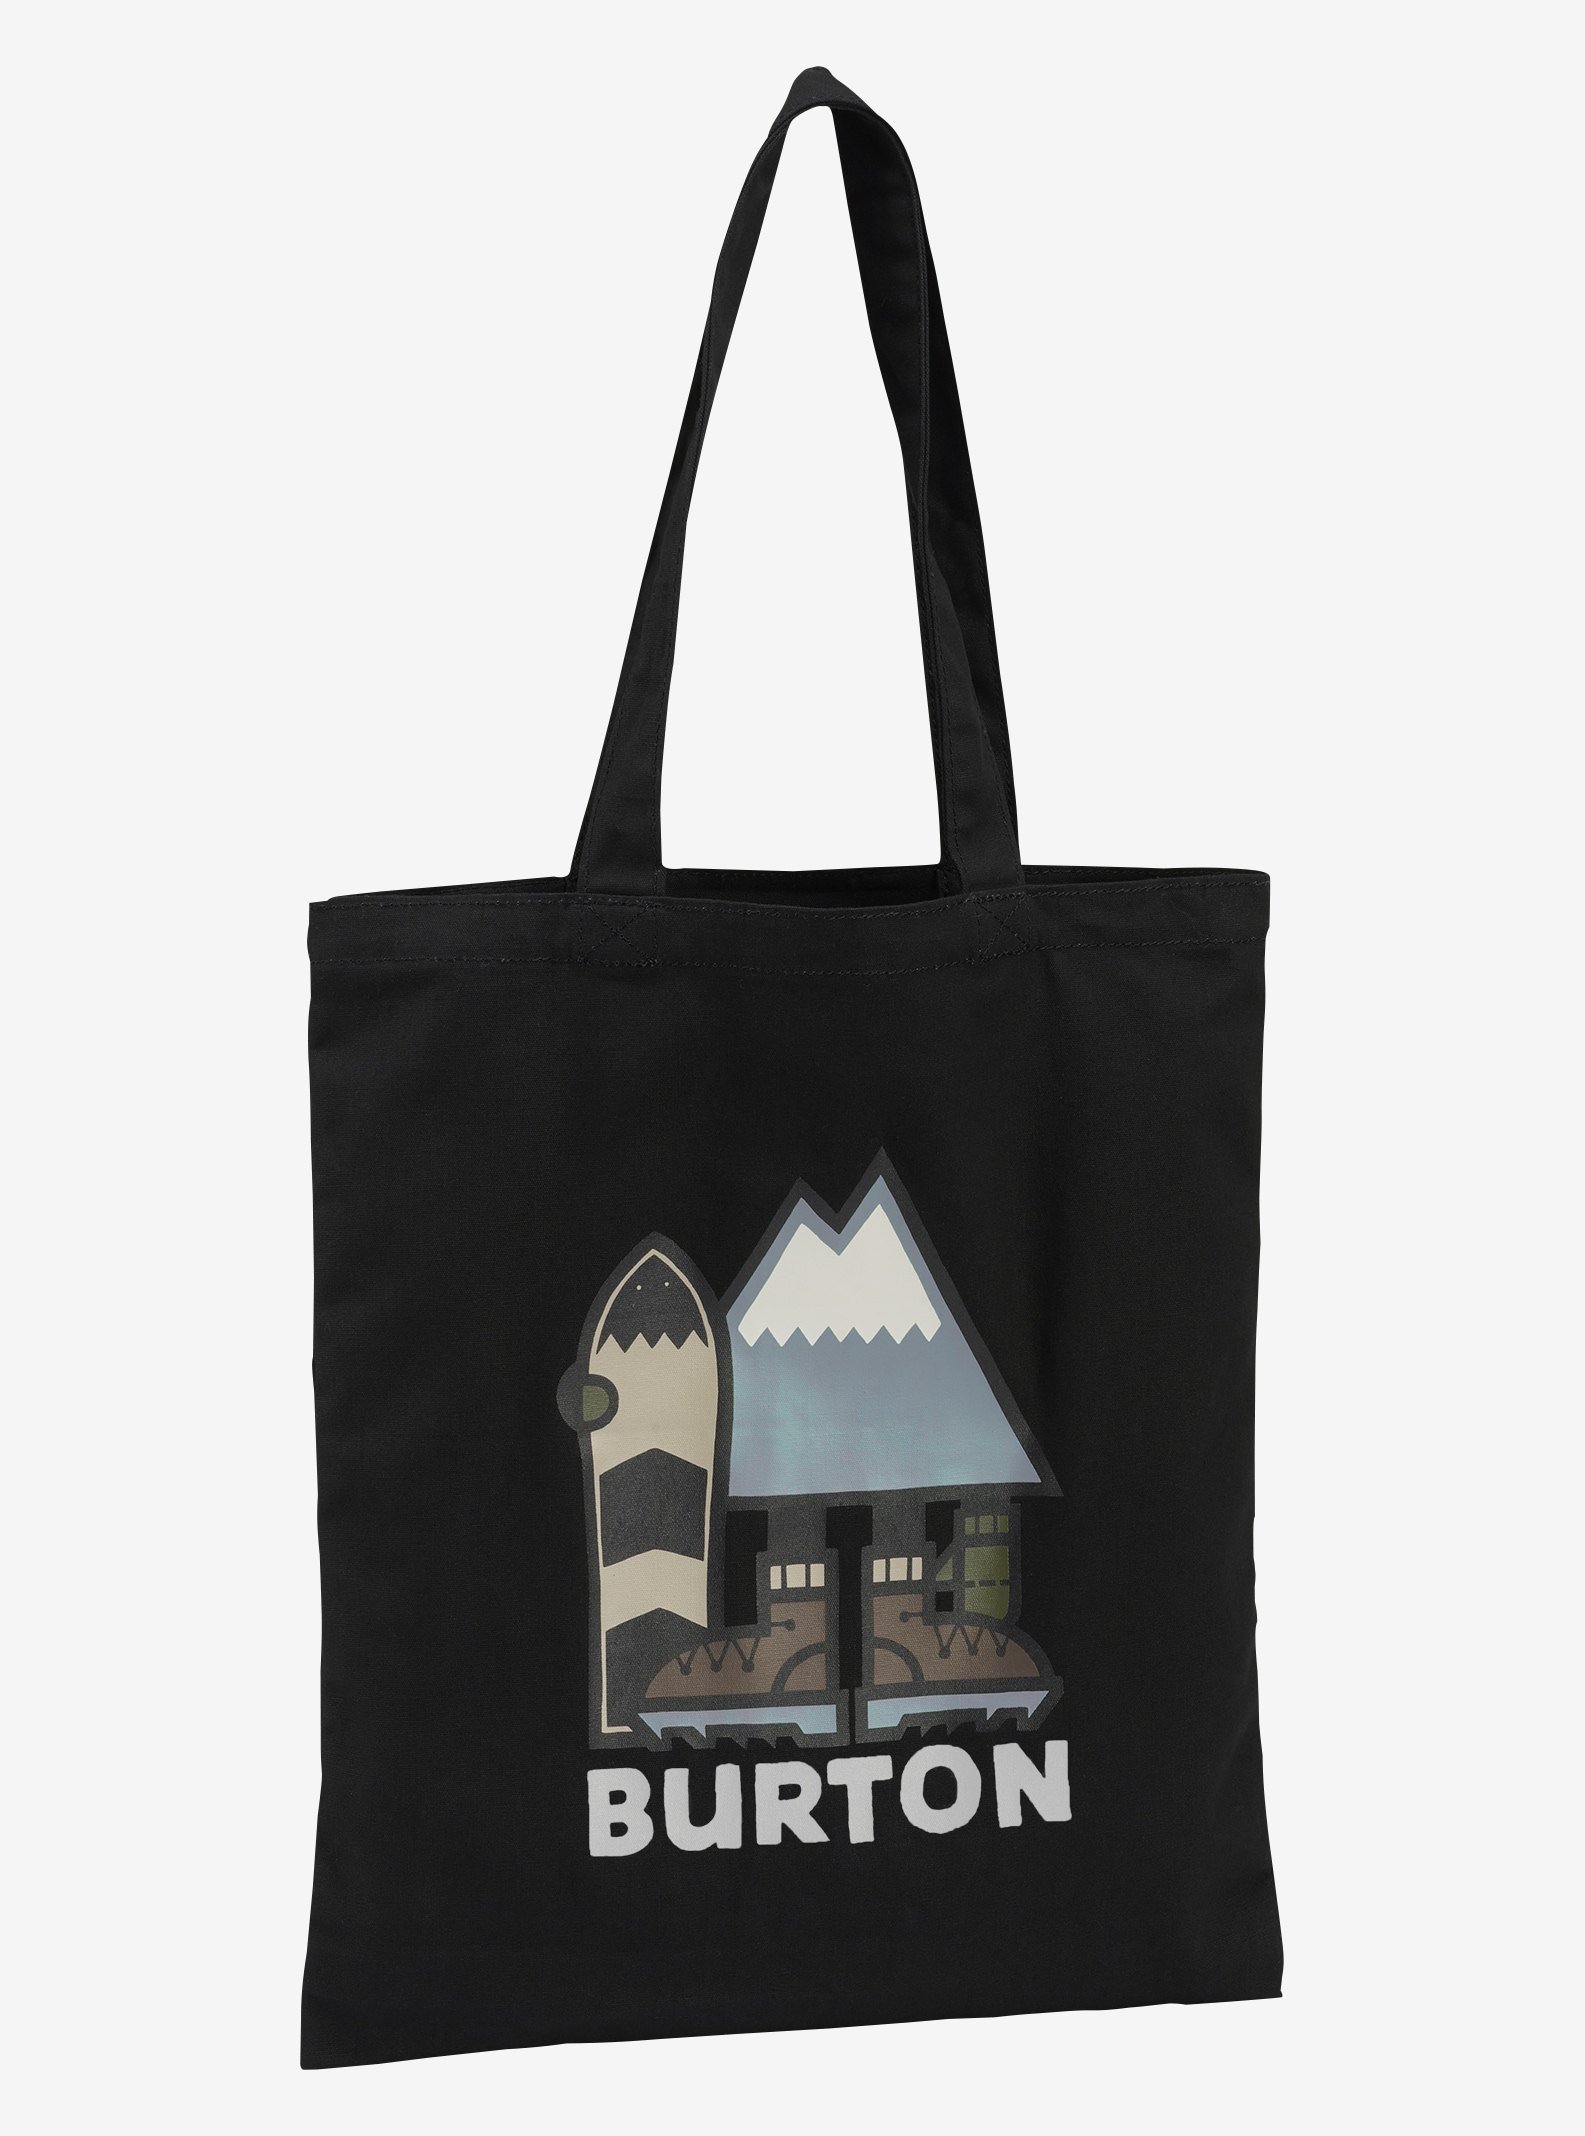 Burton Simple Tote shown in True Black Leary